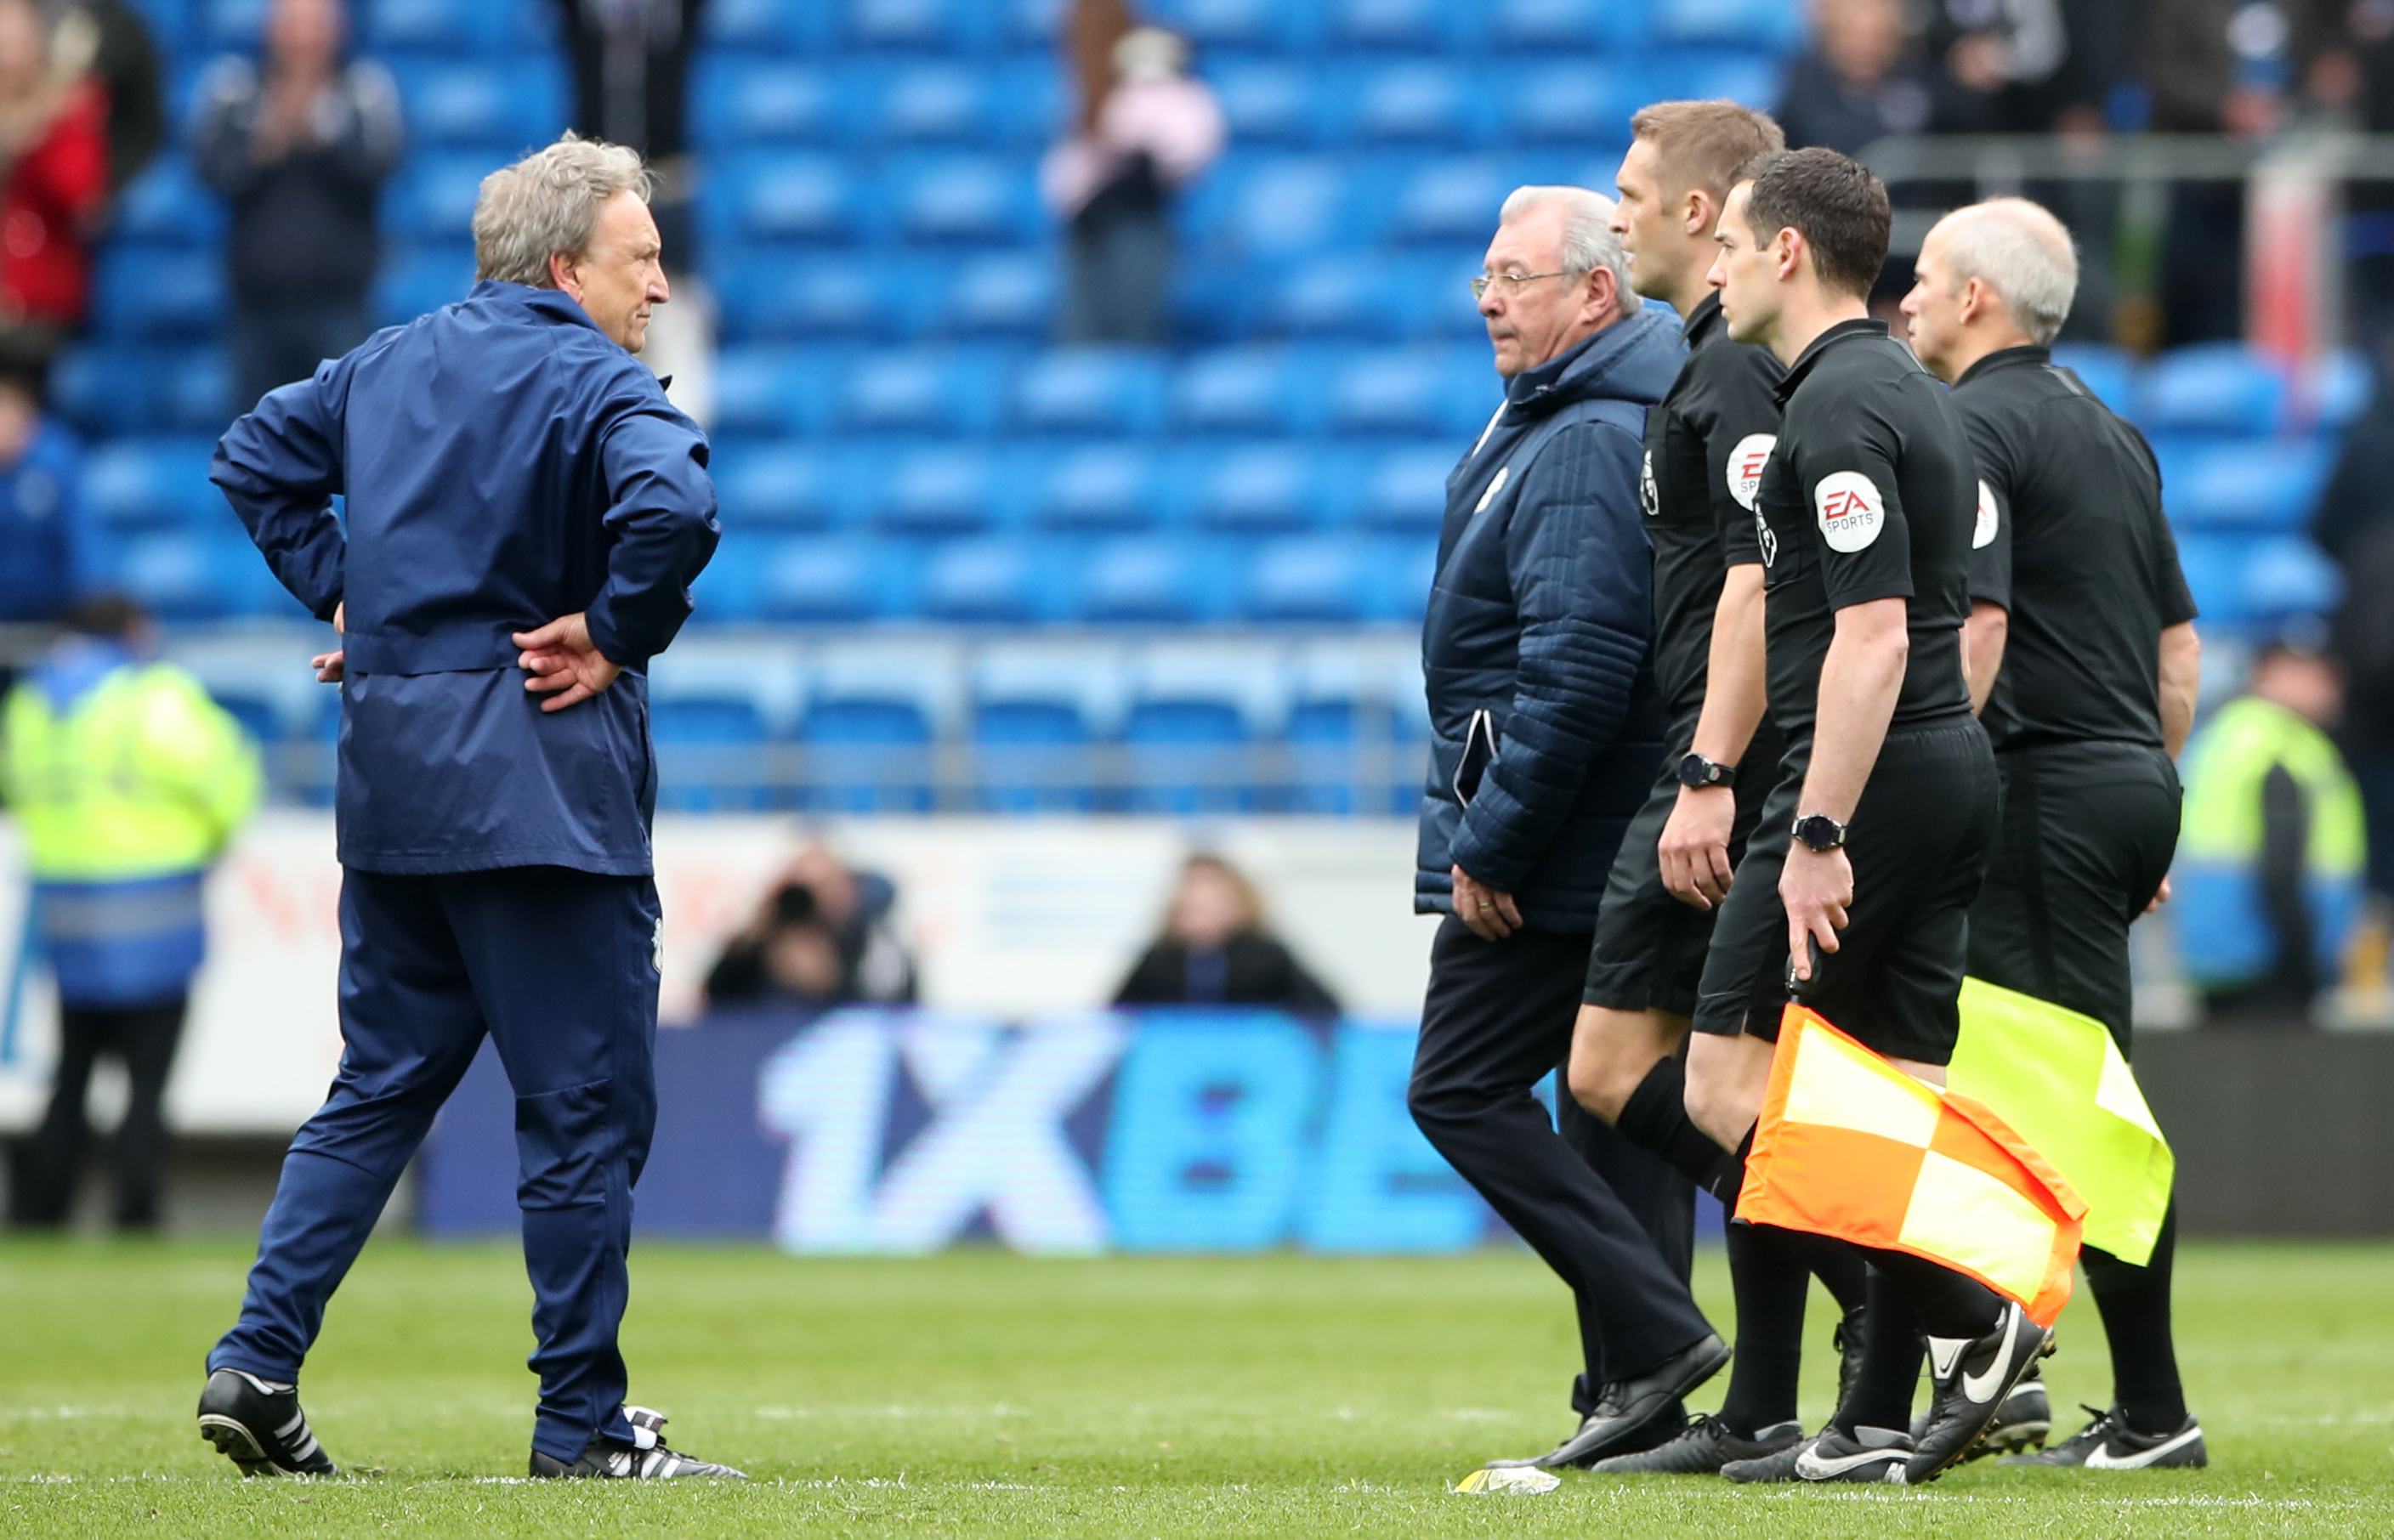 Cardiff manager Neil Warnock was fuming with the officials following defeat by Chelsea